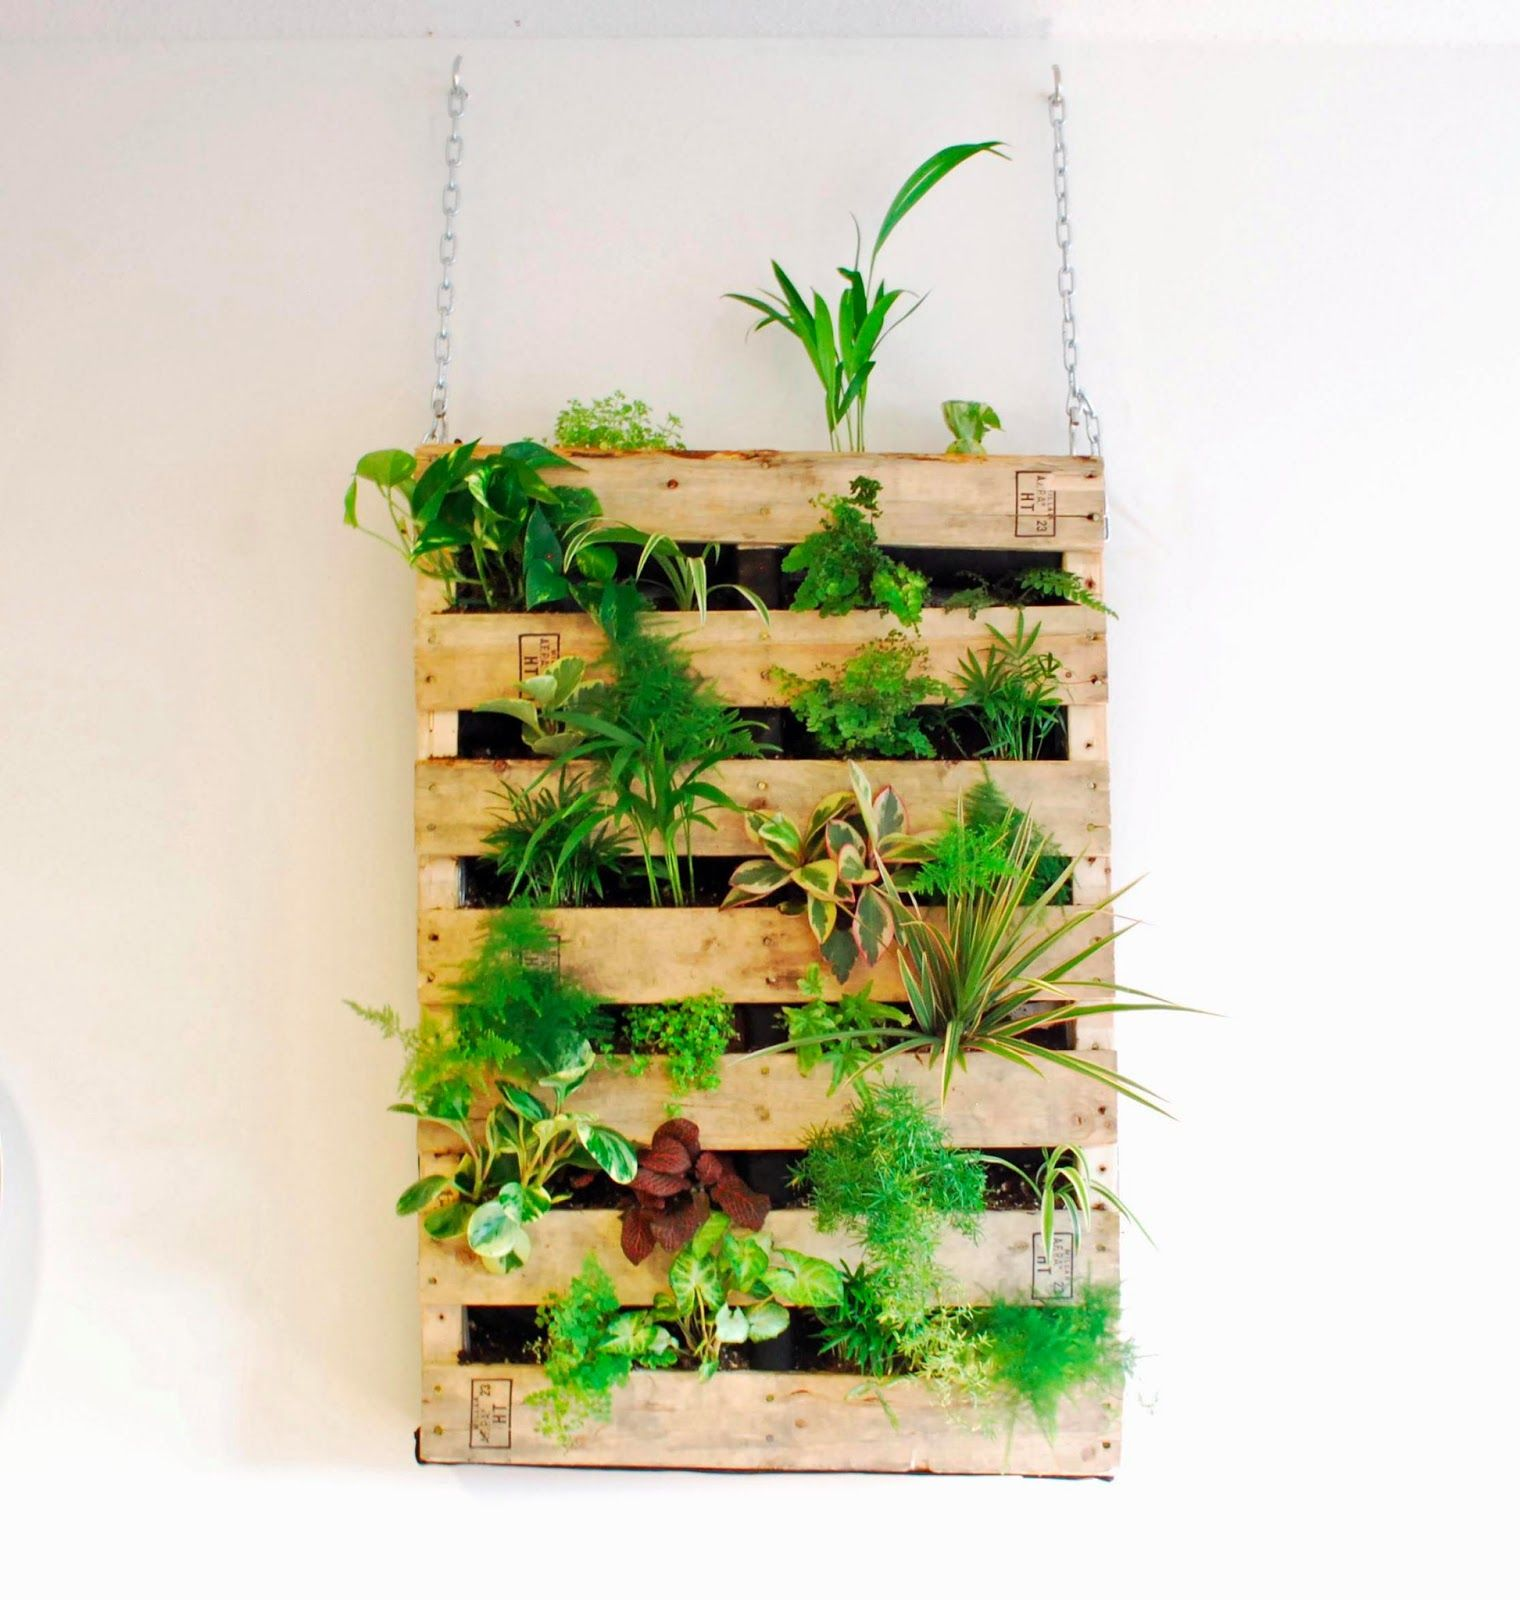 Tutorial - Awesome indoor living wall / vertical garden ... Indoor Wall Garden Diy